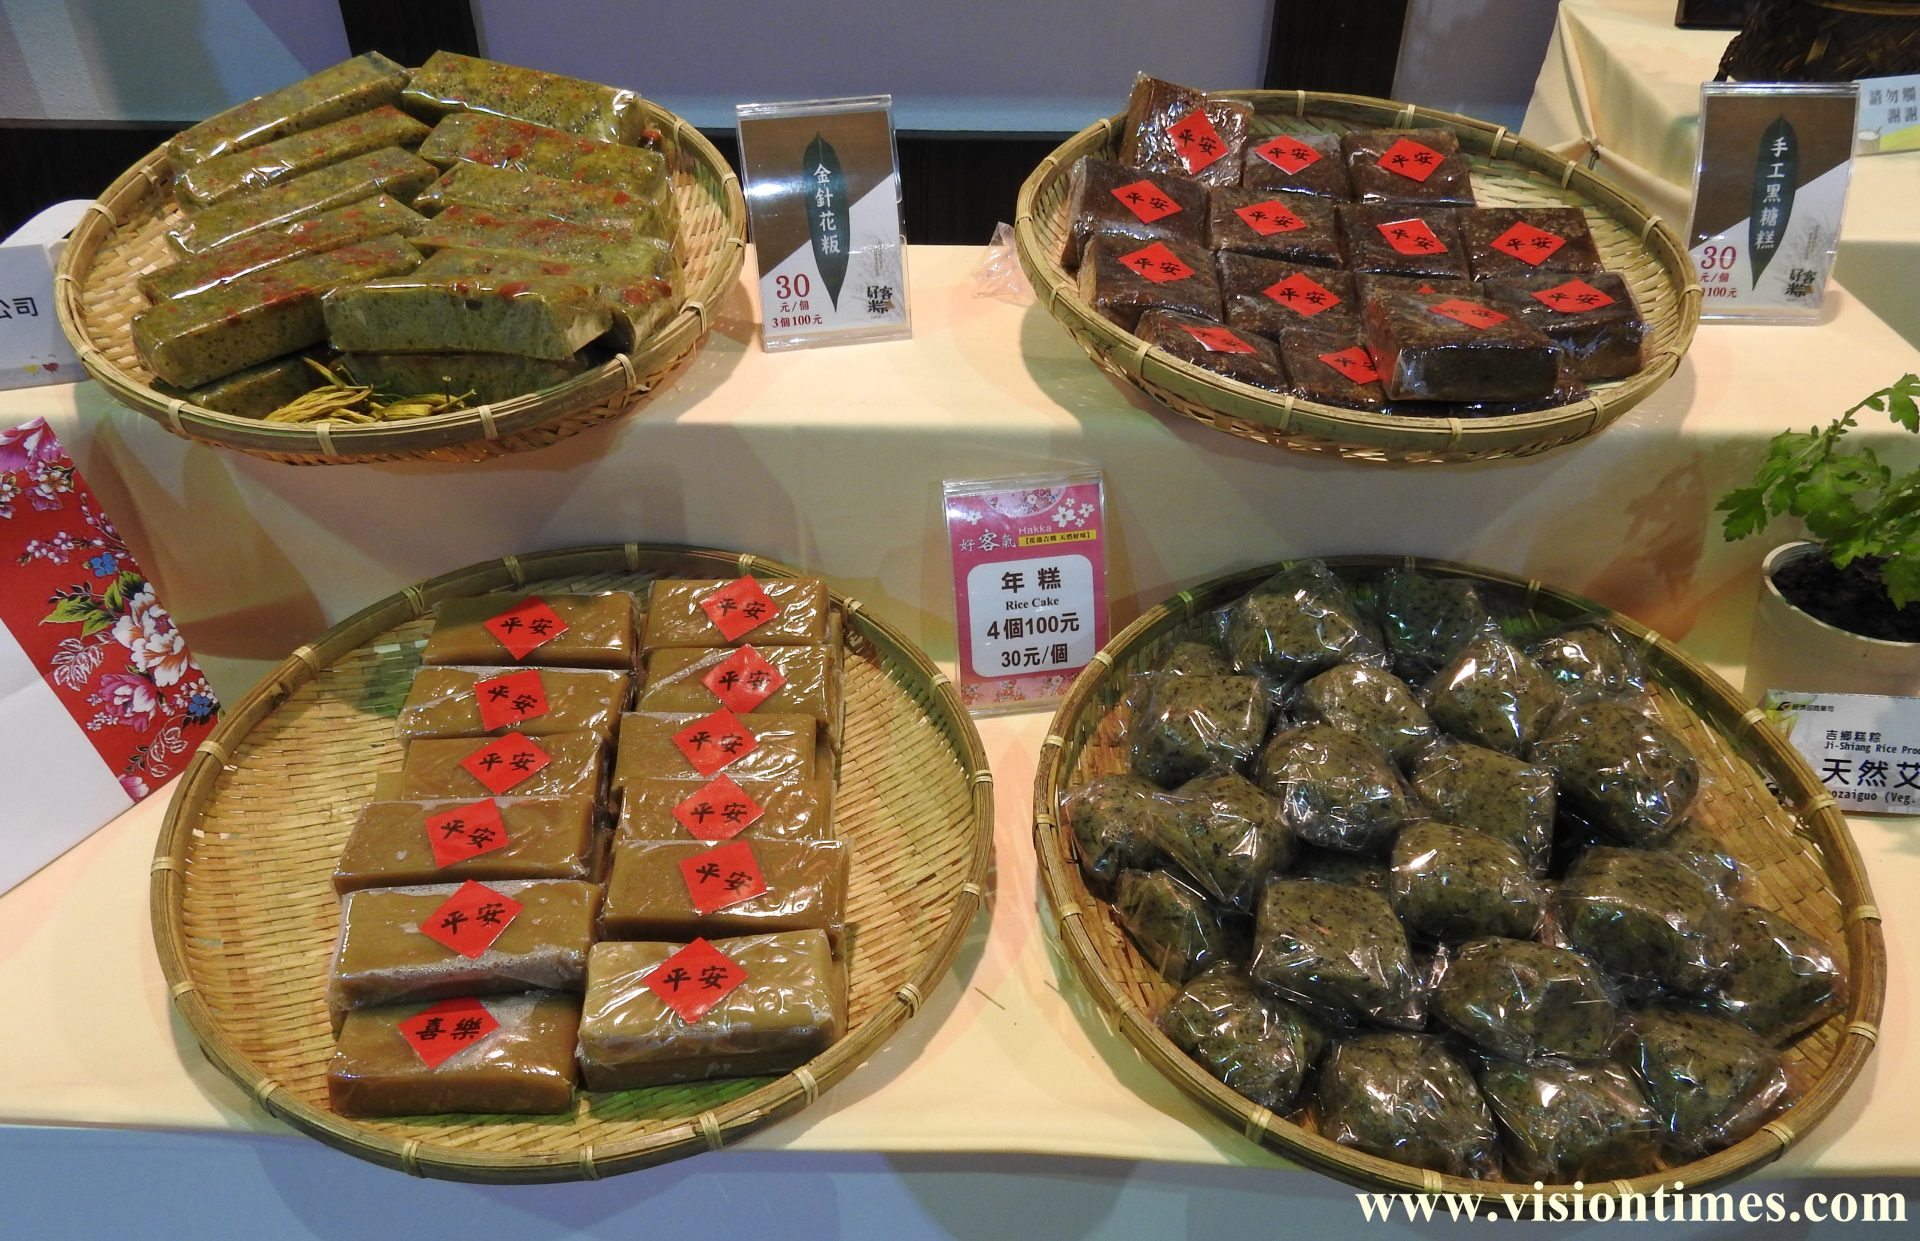 A variety of traditional Hakka rice cakes are available at the Hakka Expo. (Image: Billy Shyu/Vision Times)